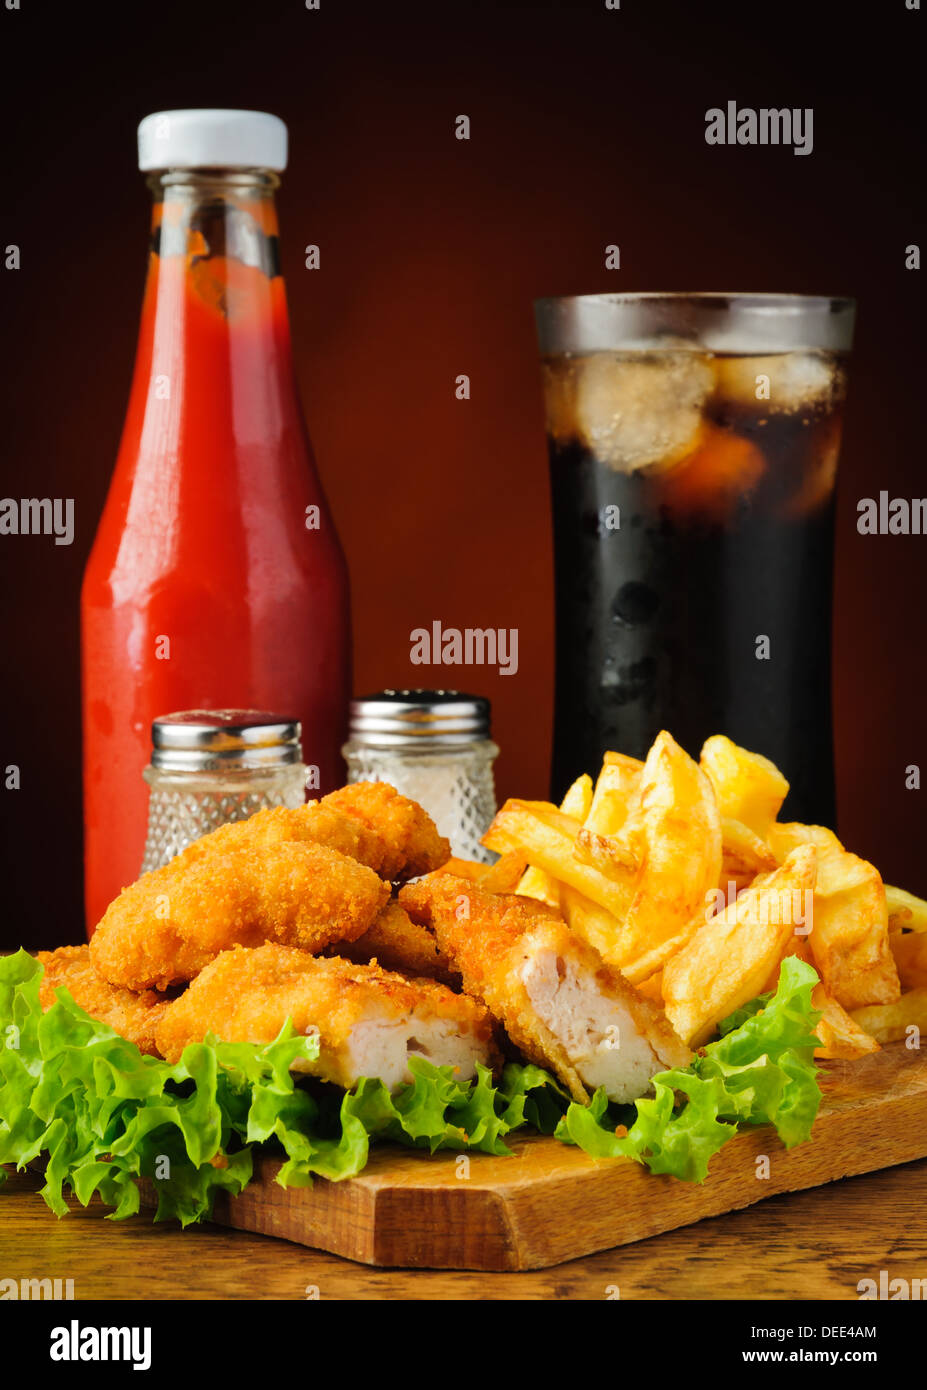 still life with chicken nuggets menu, french fries, cola and tomato ketchup - Stock Image